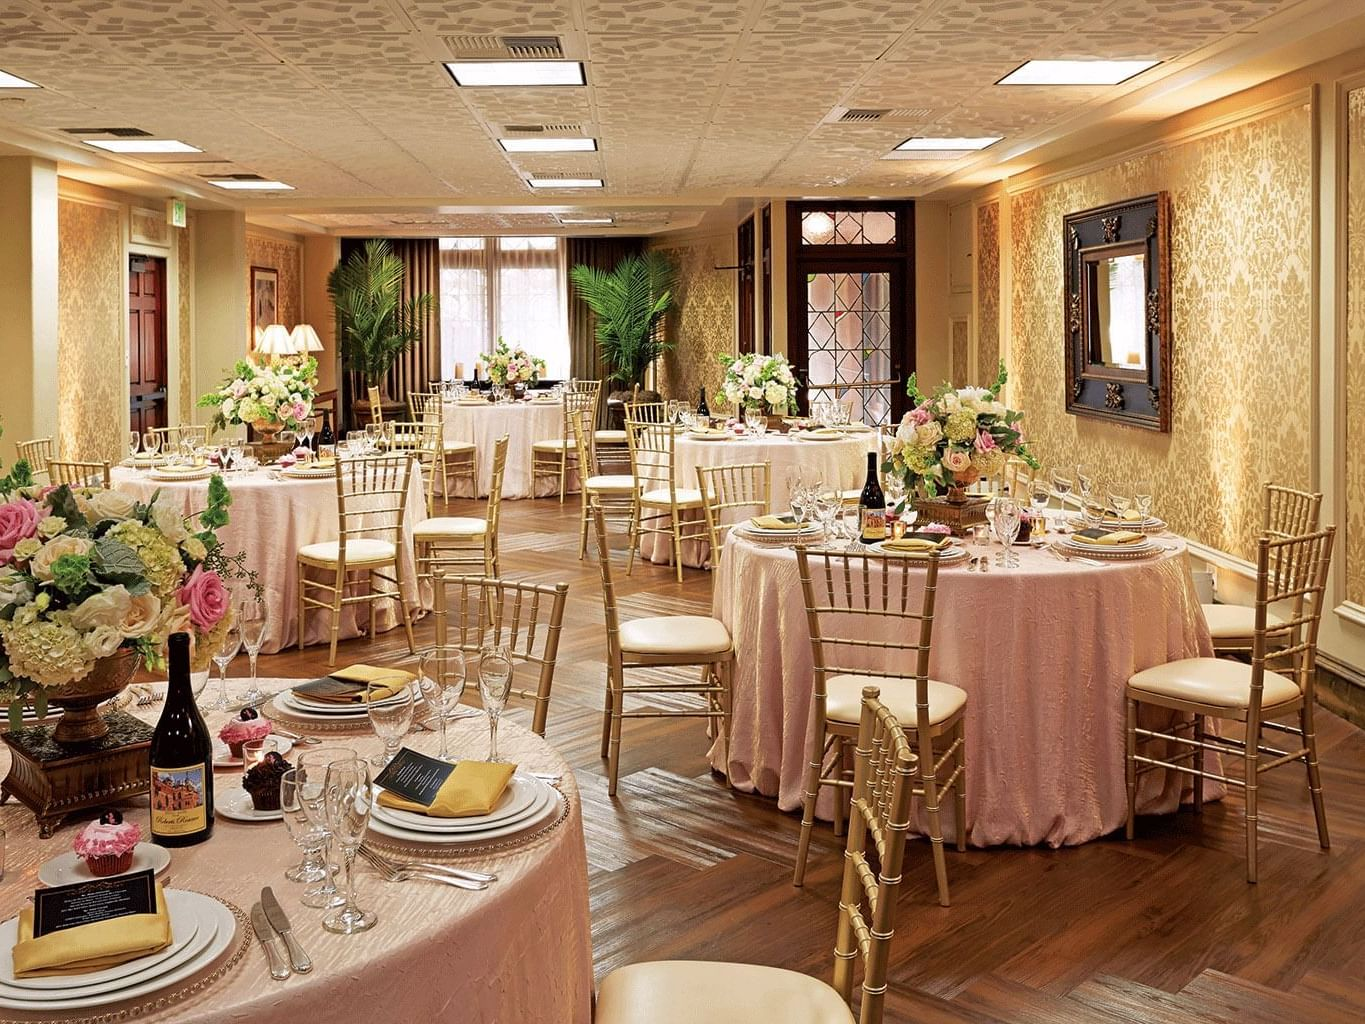 room with round tables wih pink tablecloths and gold chairs